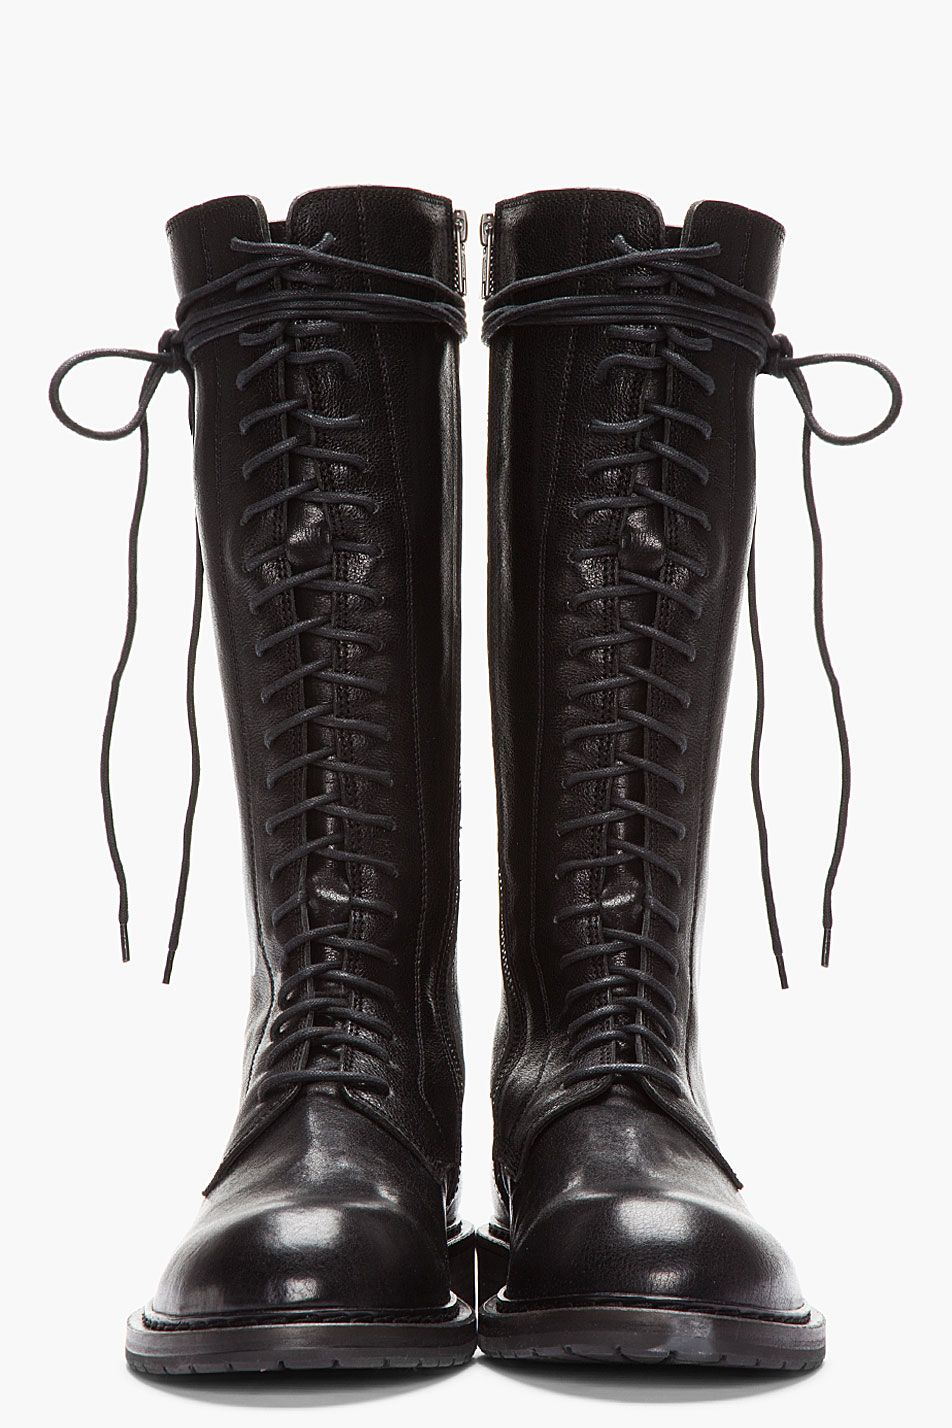 NEW FASHION WOMEN SHOES LACE UP MID CALF MILITARY COMBAT BOOTS ANNE - 01 / BLACK